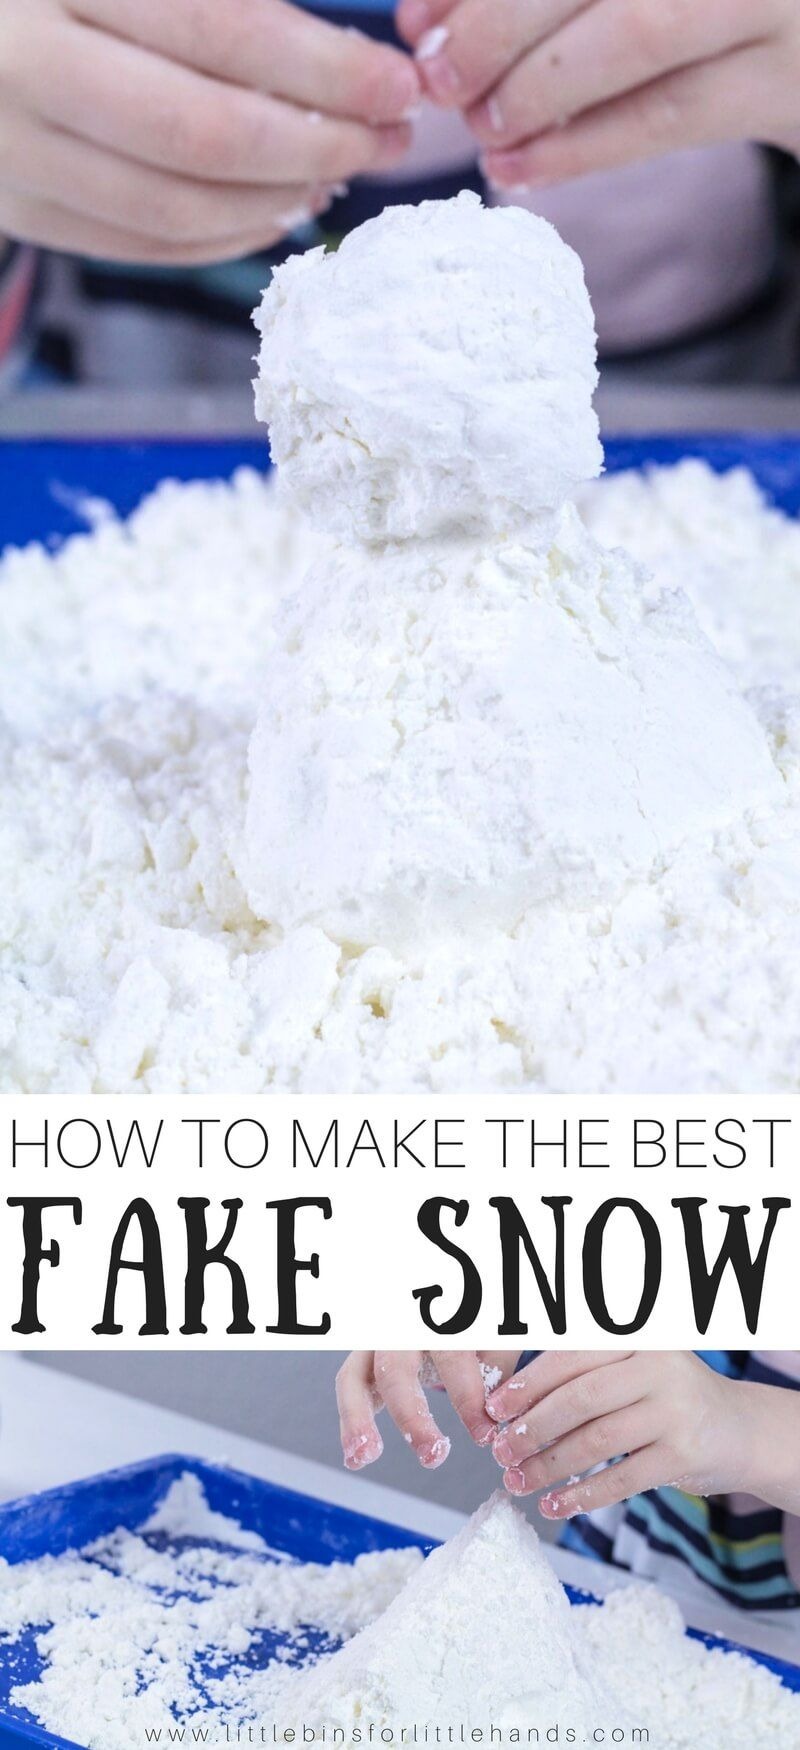 Fake Snow You Can Make Yourself Snow Recipe How To Make Snow Winter Activities For Kids